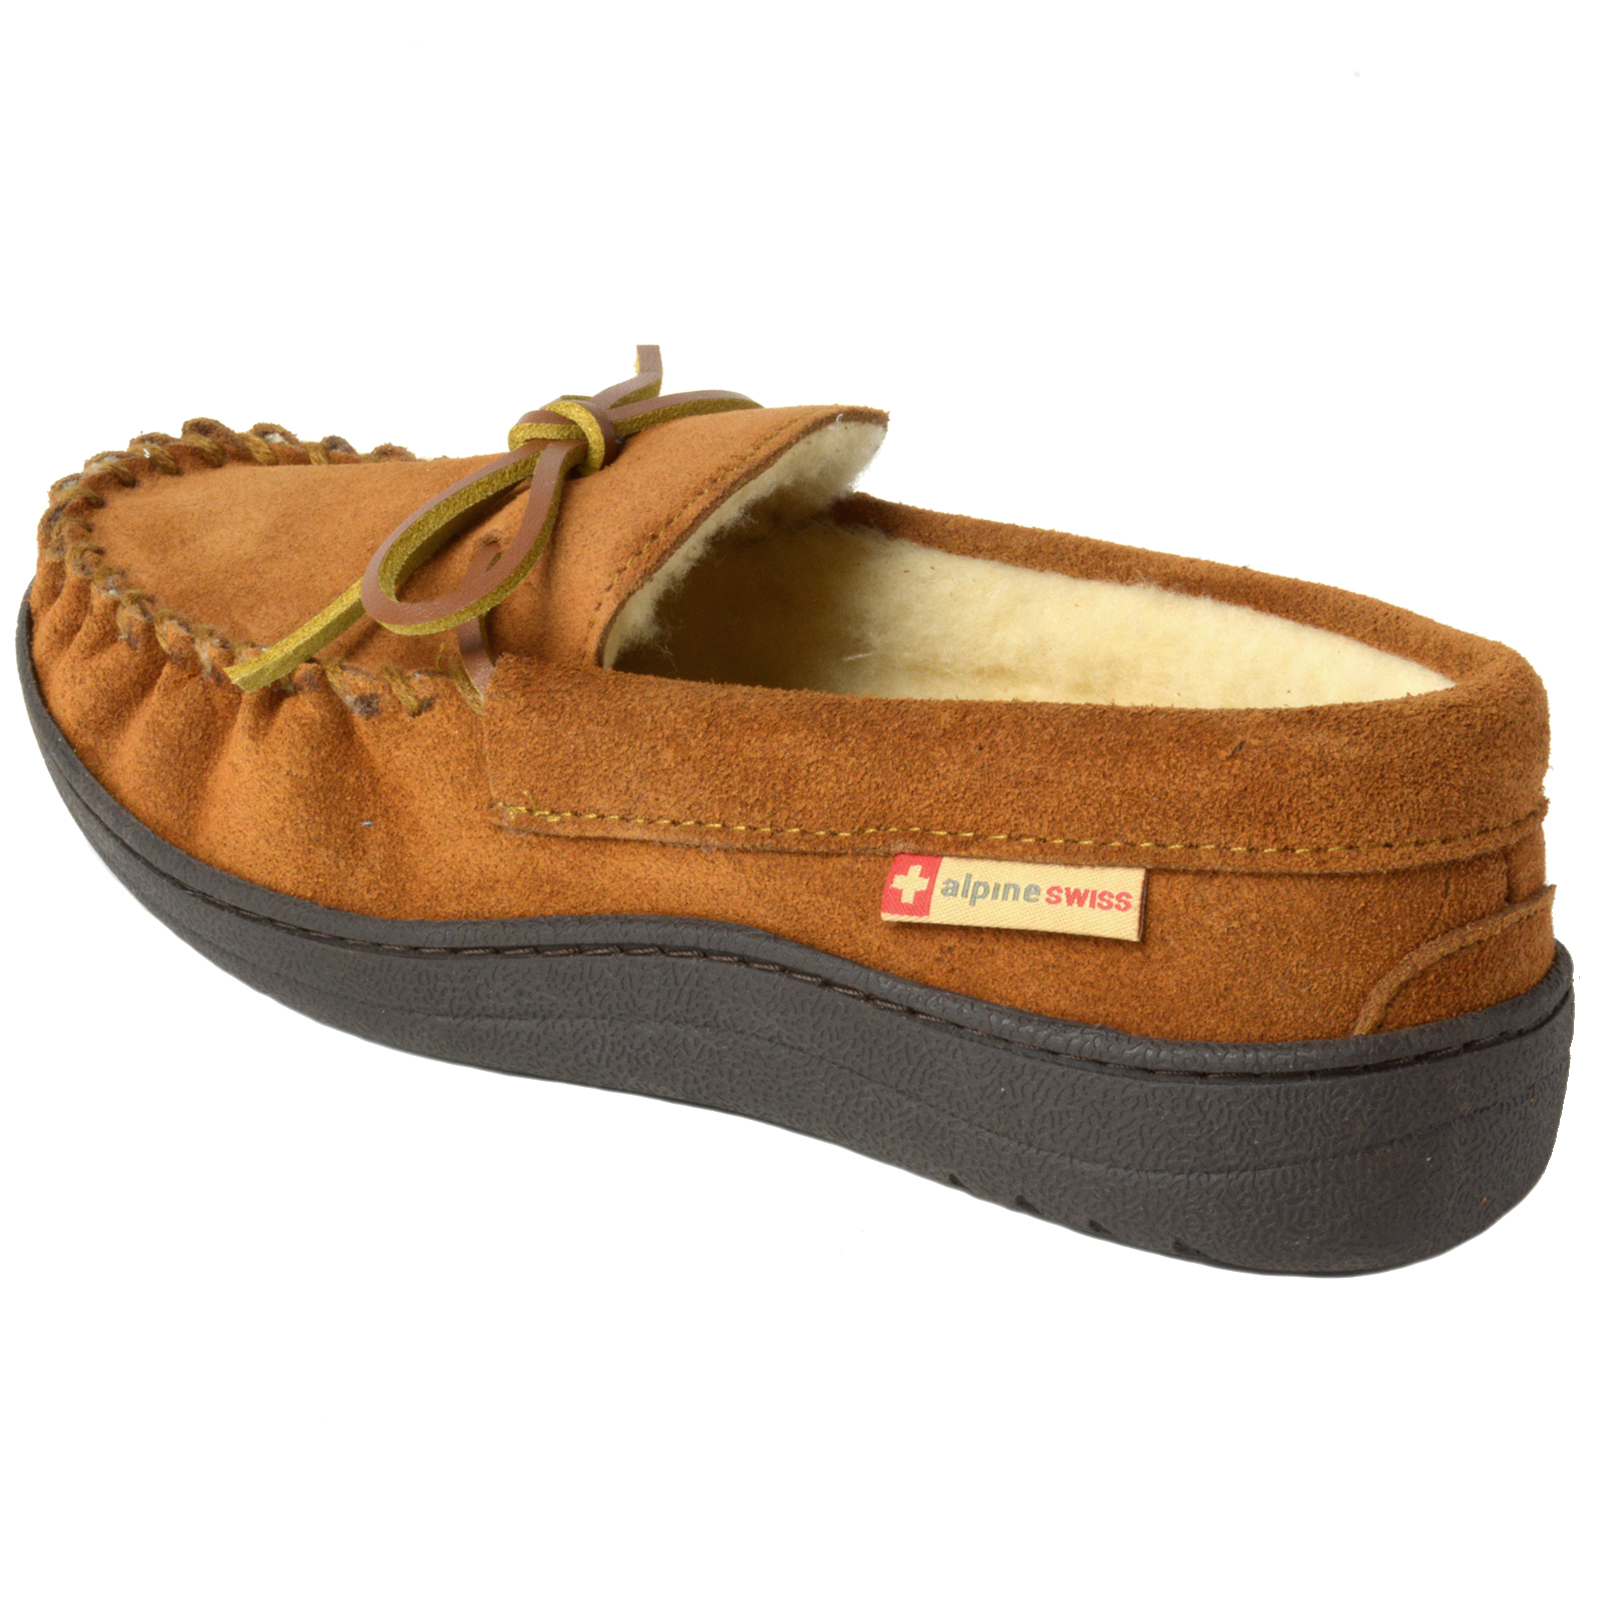 Alpine-Swiss-Sabine-Womens-Suede-Shearling-Moccasin-Slippers-House-Shoes-Slip-On miniature 26